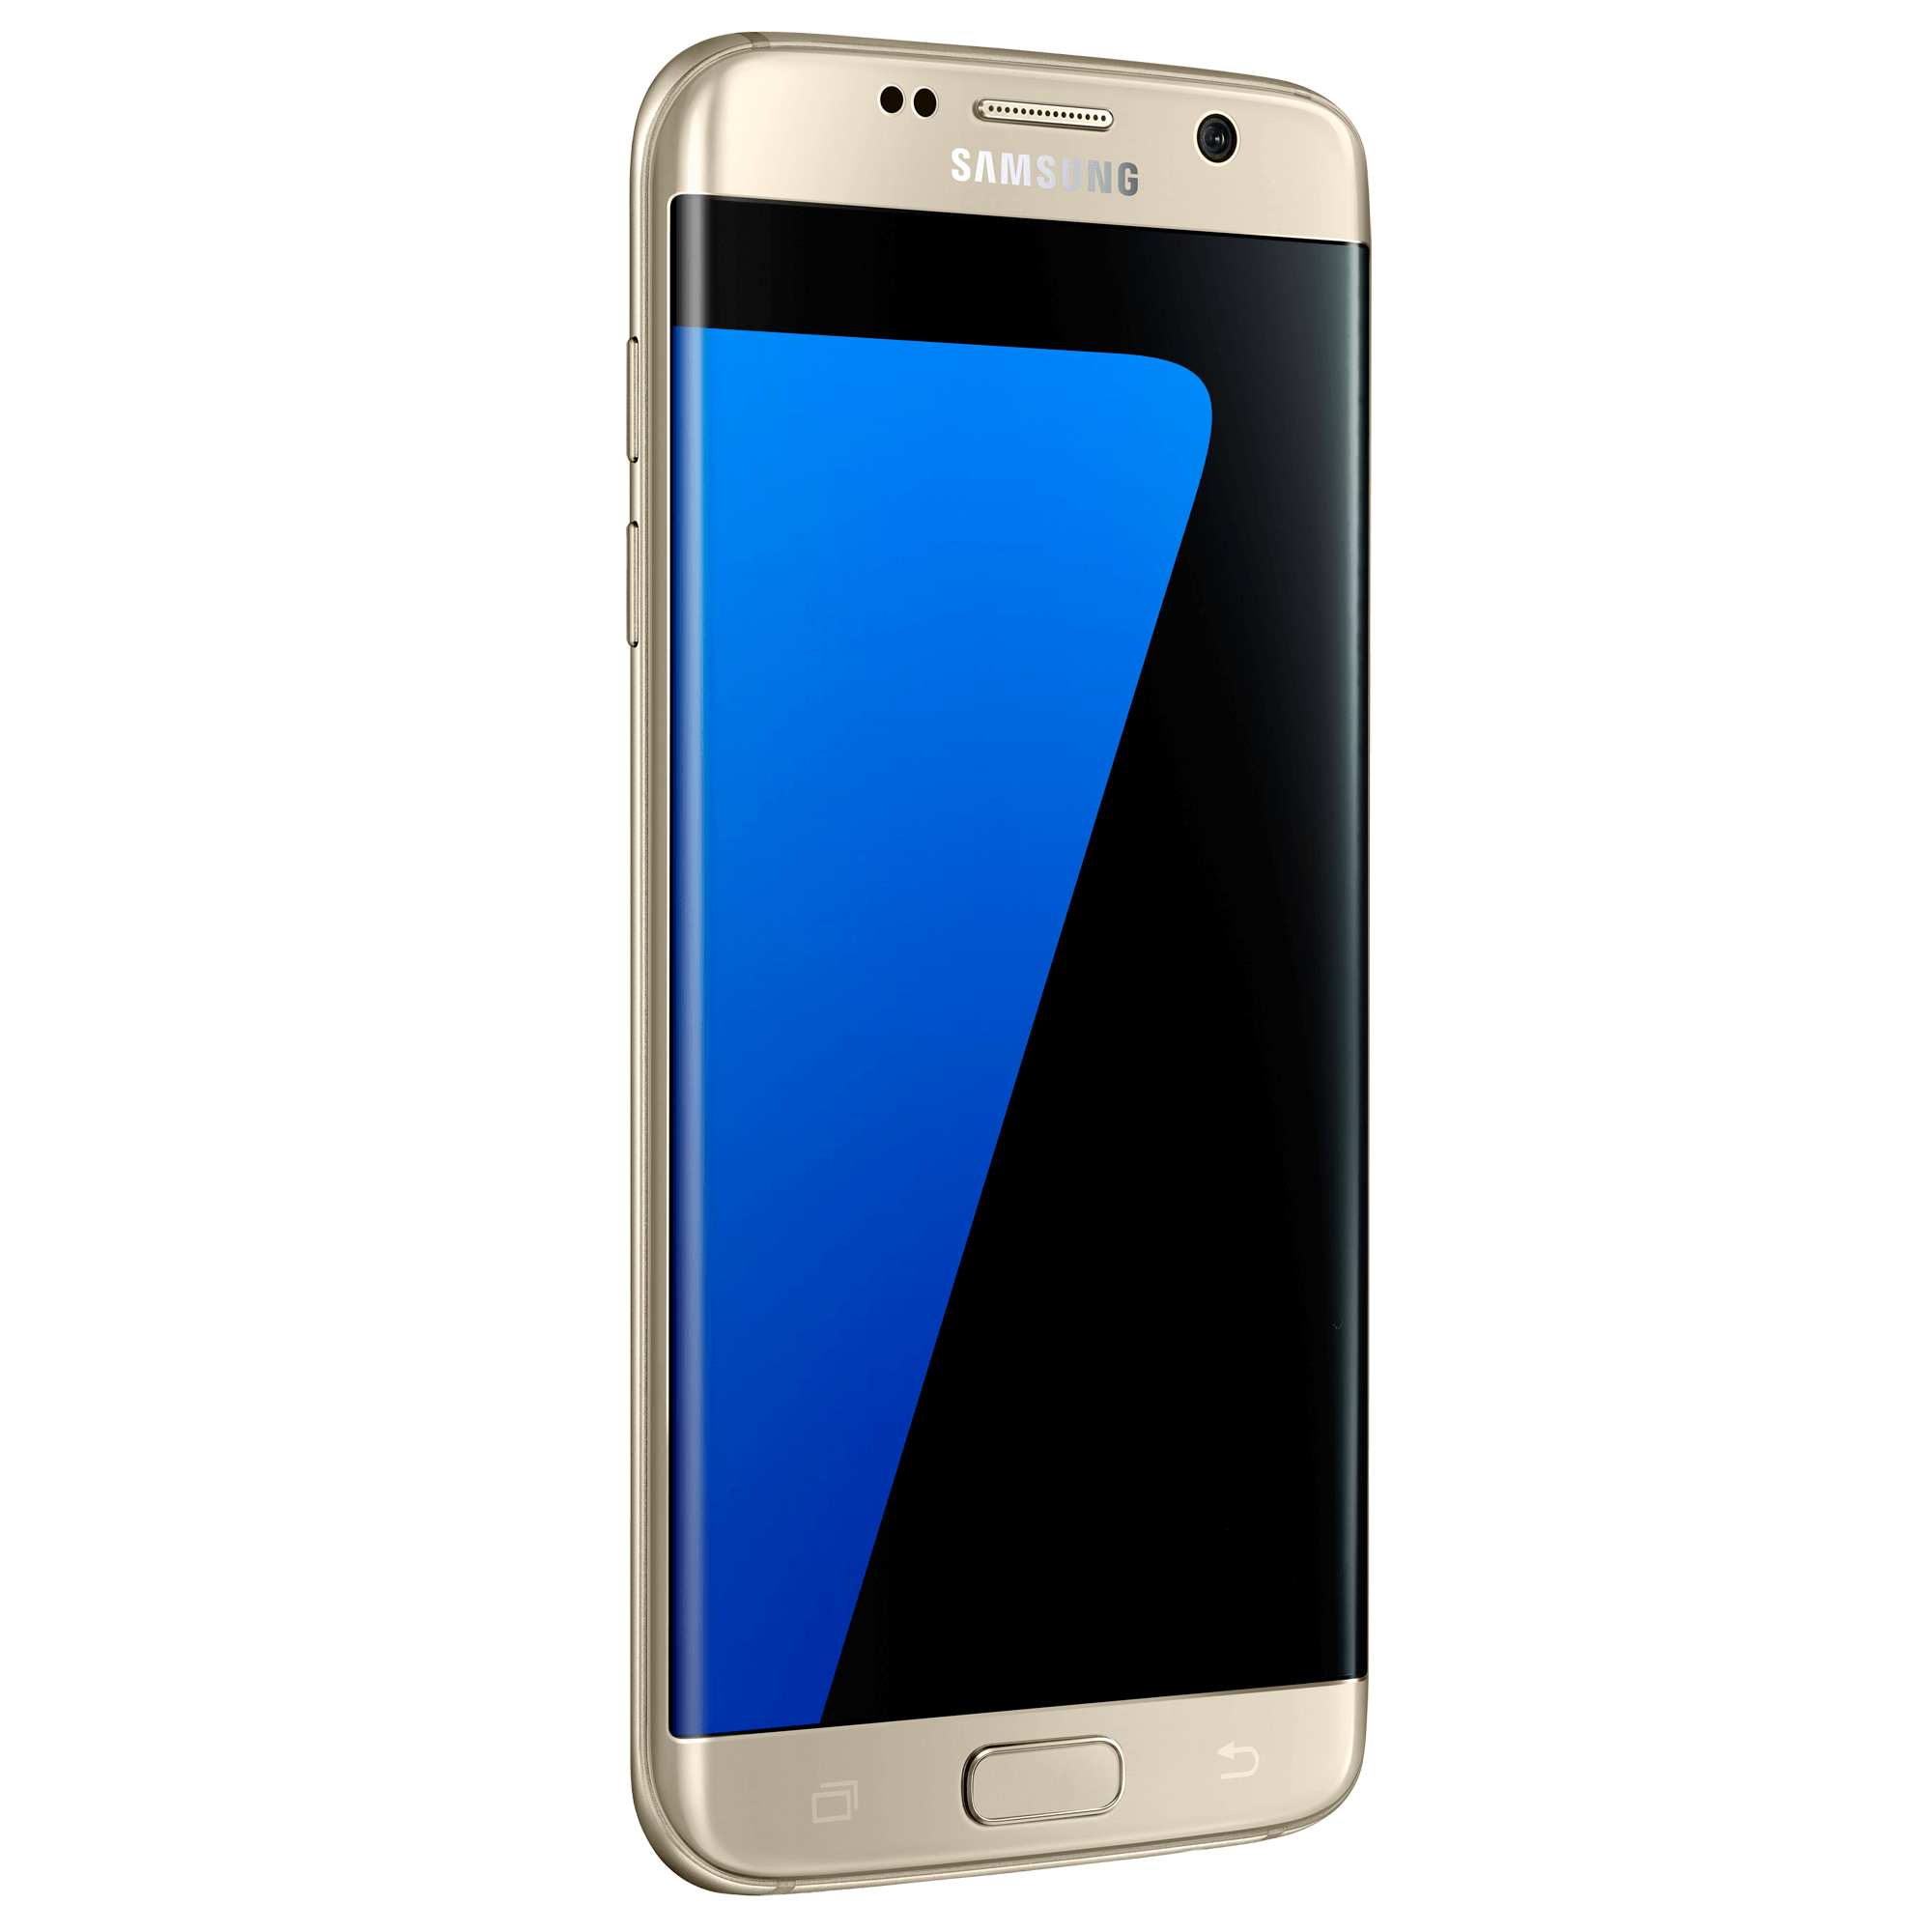 samsung galaxy s7 edge populairder dan s7 repair it now. Black Bedroom Furniture Sets. Home Design Ideas